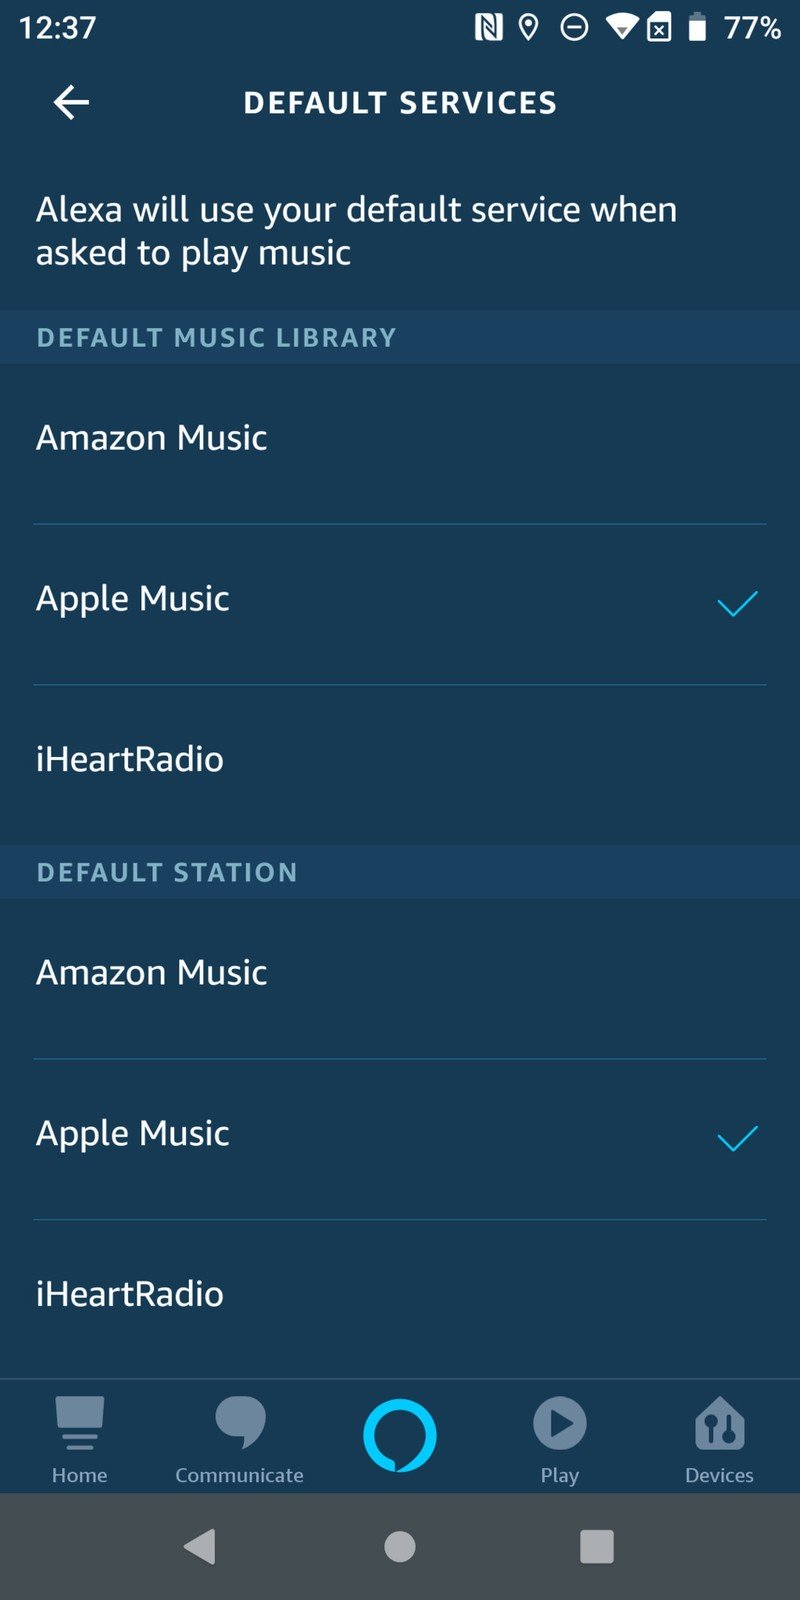 alexa-app-apple-music-7.jpg?itok=QLv9kw1